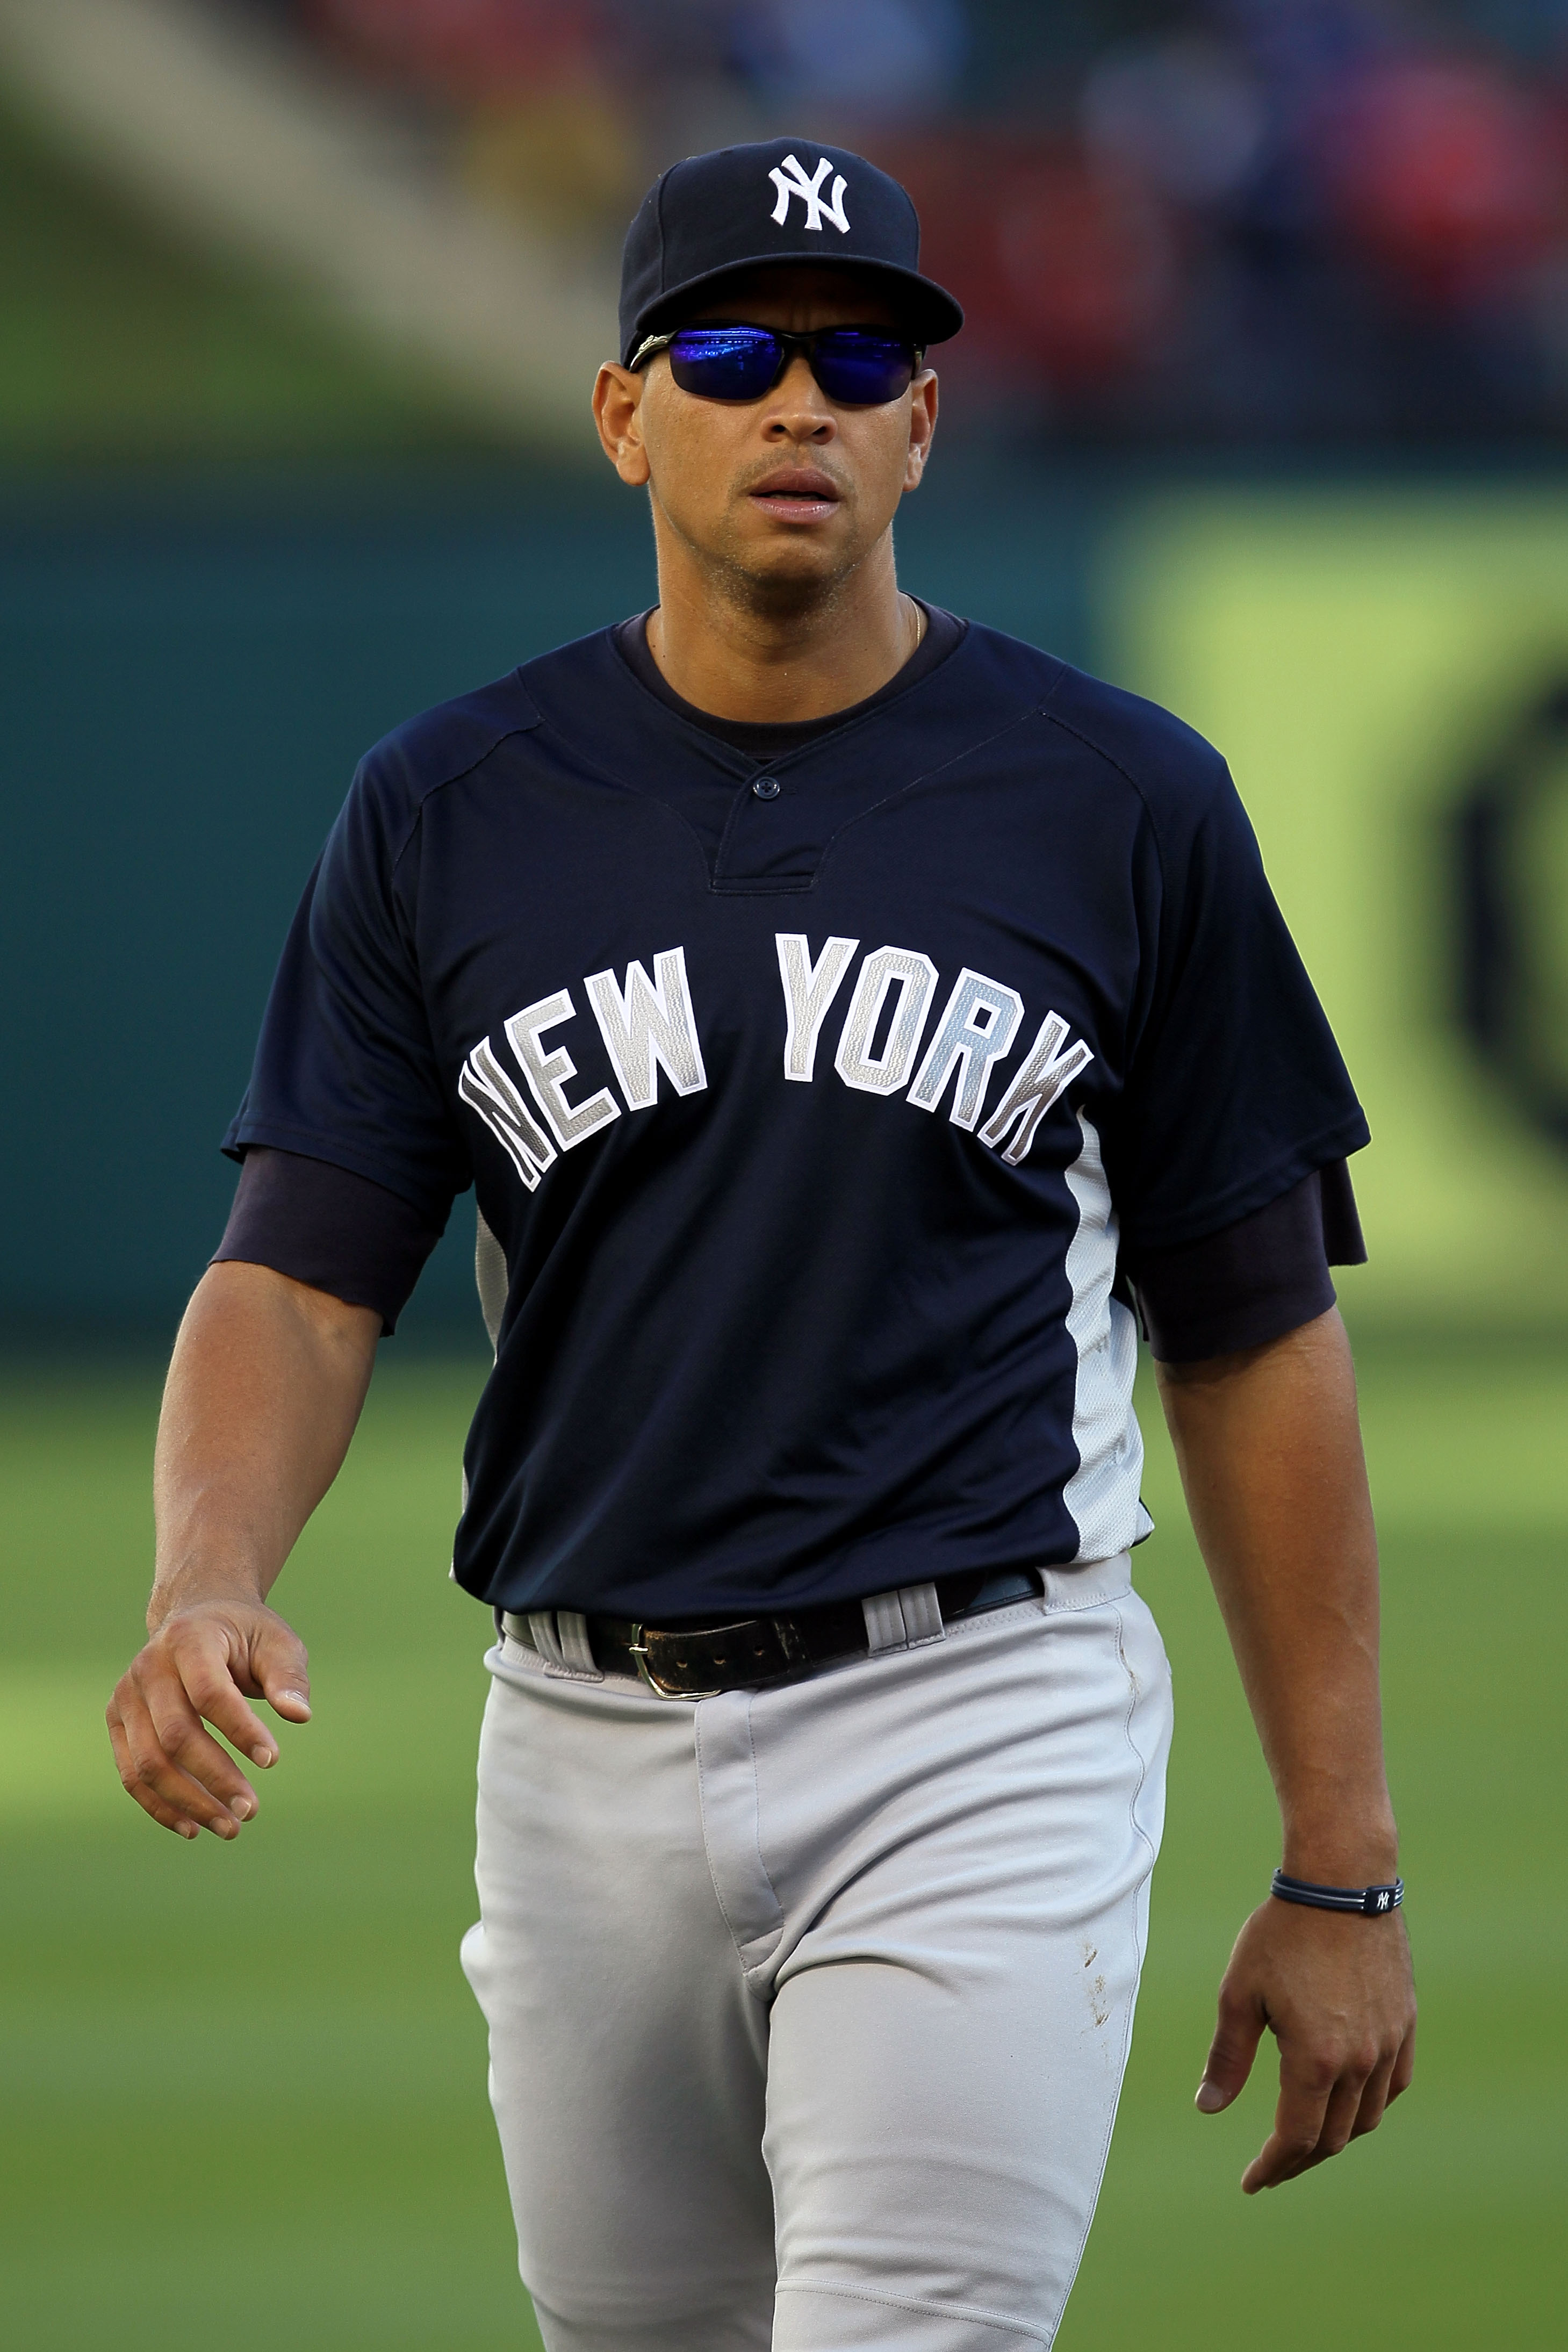 ARLINGTON, TX - OCTOBER 15:  Alex Rodriguez #13 of the New York Yankees looks on during batting practice against the Texas Rangers in Game One of the ALCS during the 2010 MLB Playoffs at Rangers Ballpark in Arlington on October 15, 2010 in Arlington, Texa